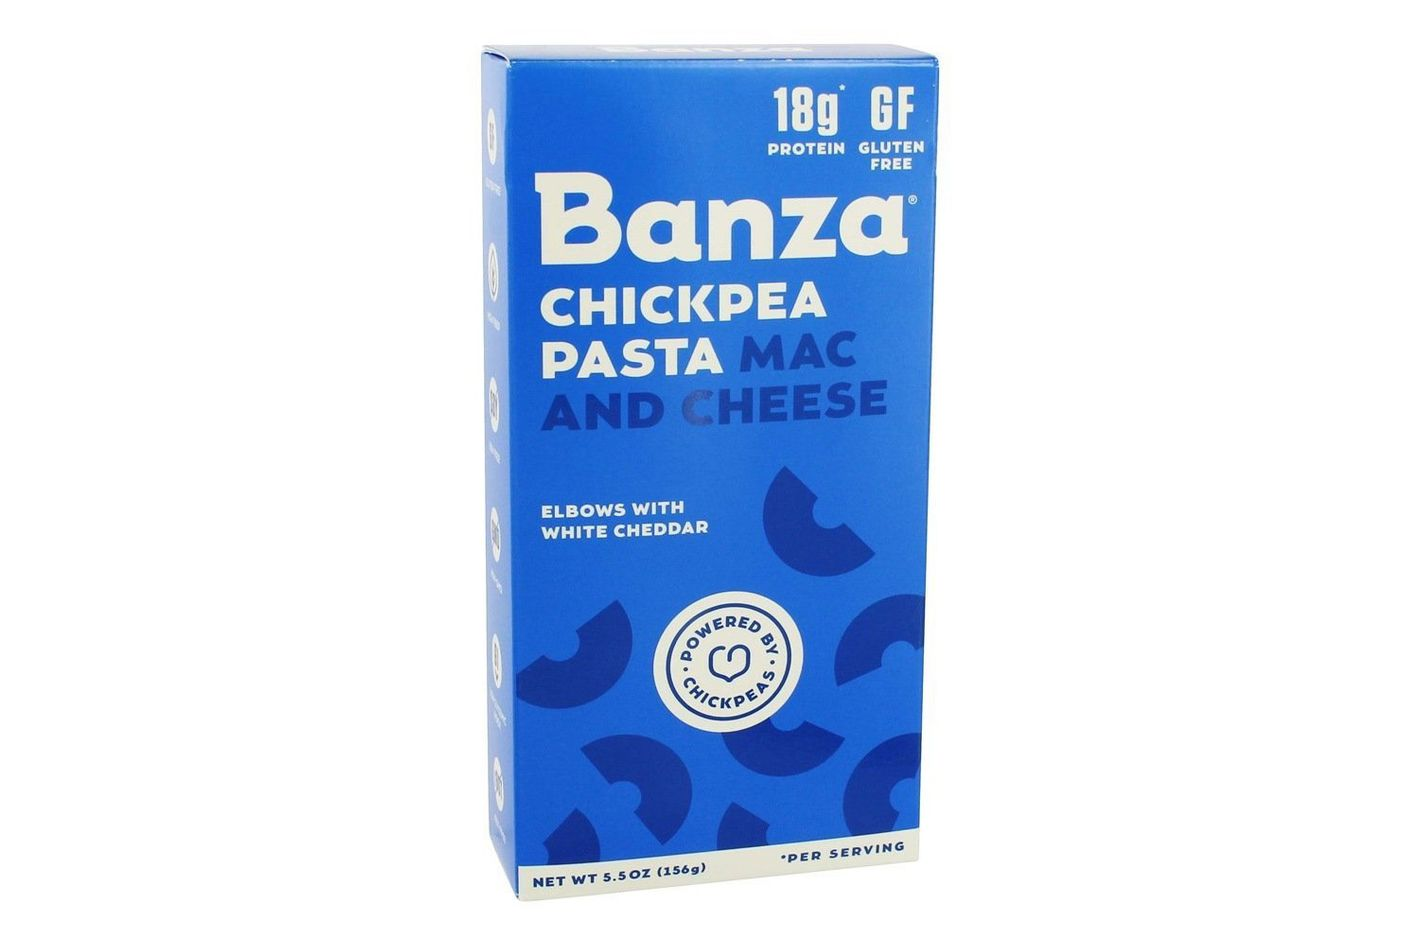 Banza Chickpea Pasta Mac & Cheese Elbows with White Cheddar